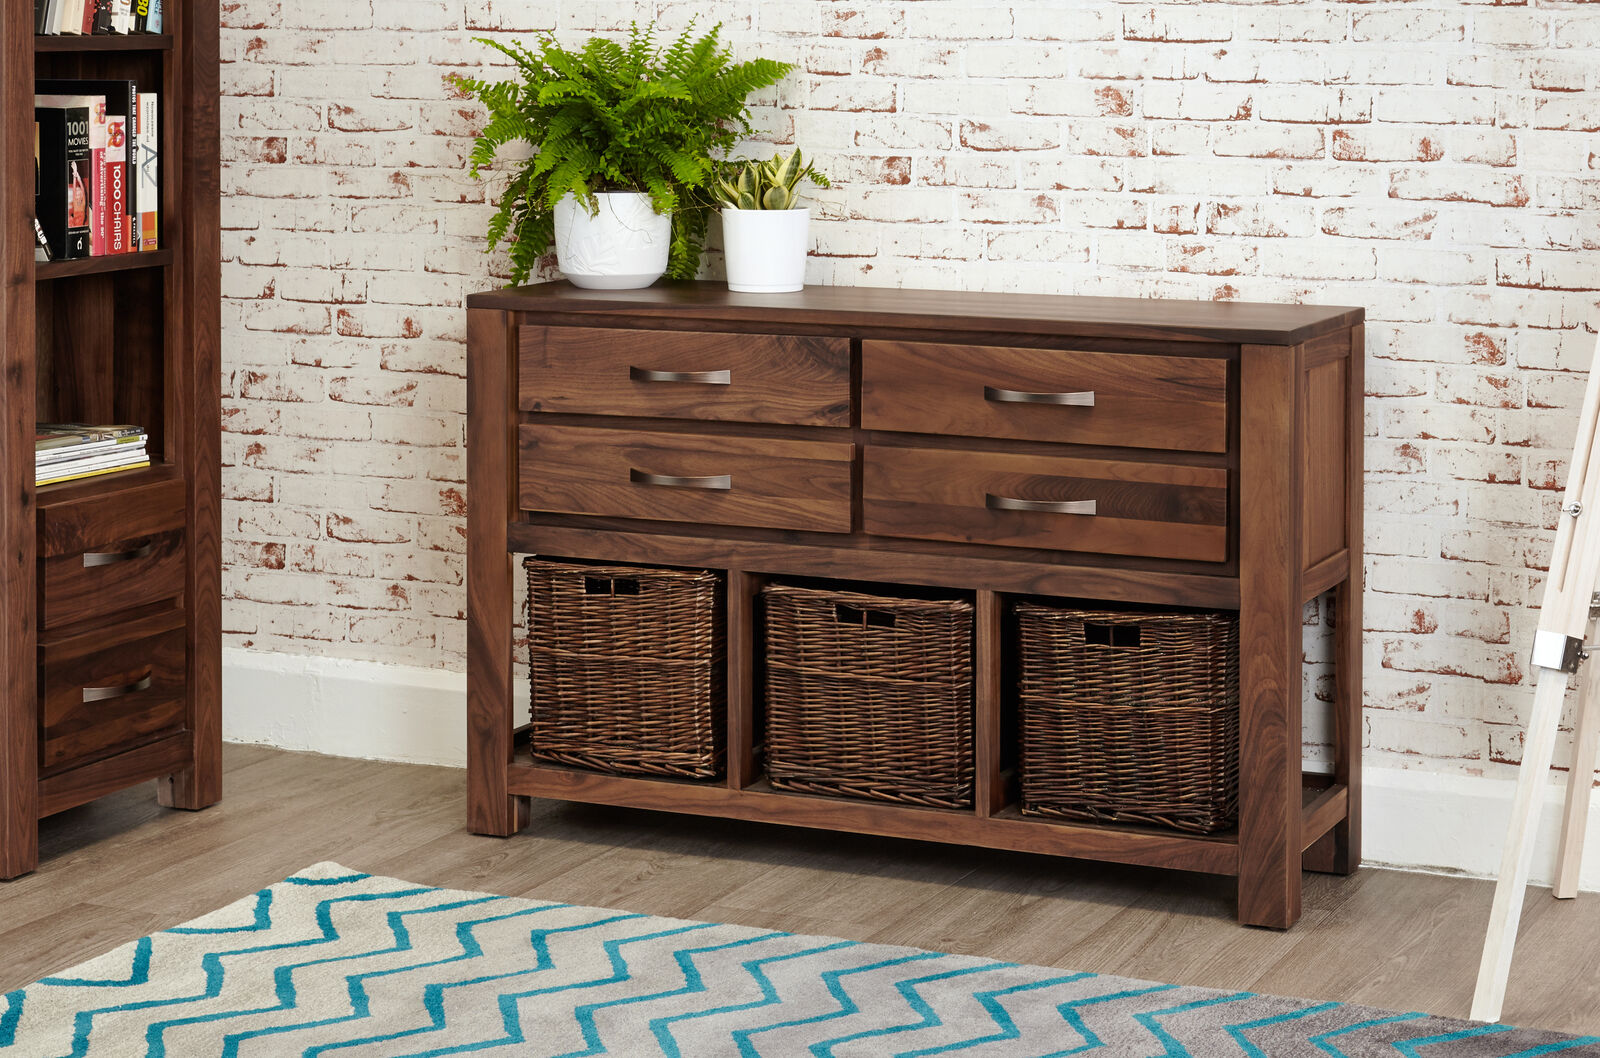 Mayan Dark Wood Console Table 4 Drawers And Wicker Baskets Storage Solid Walnut